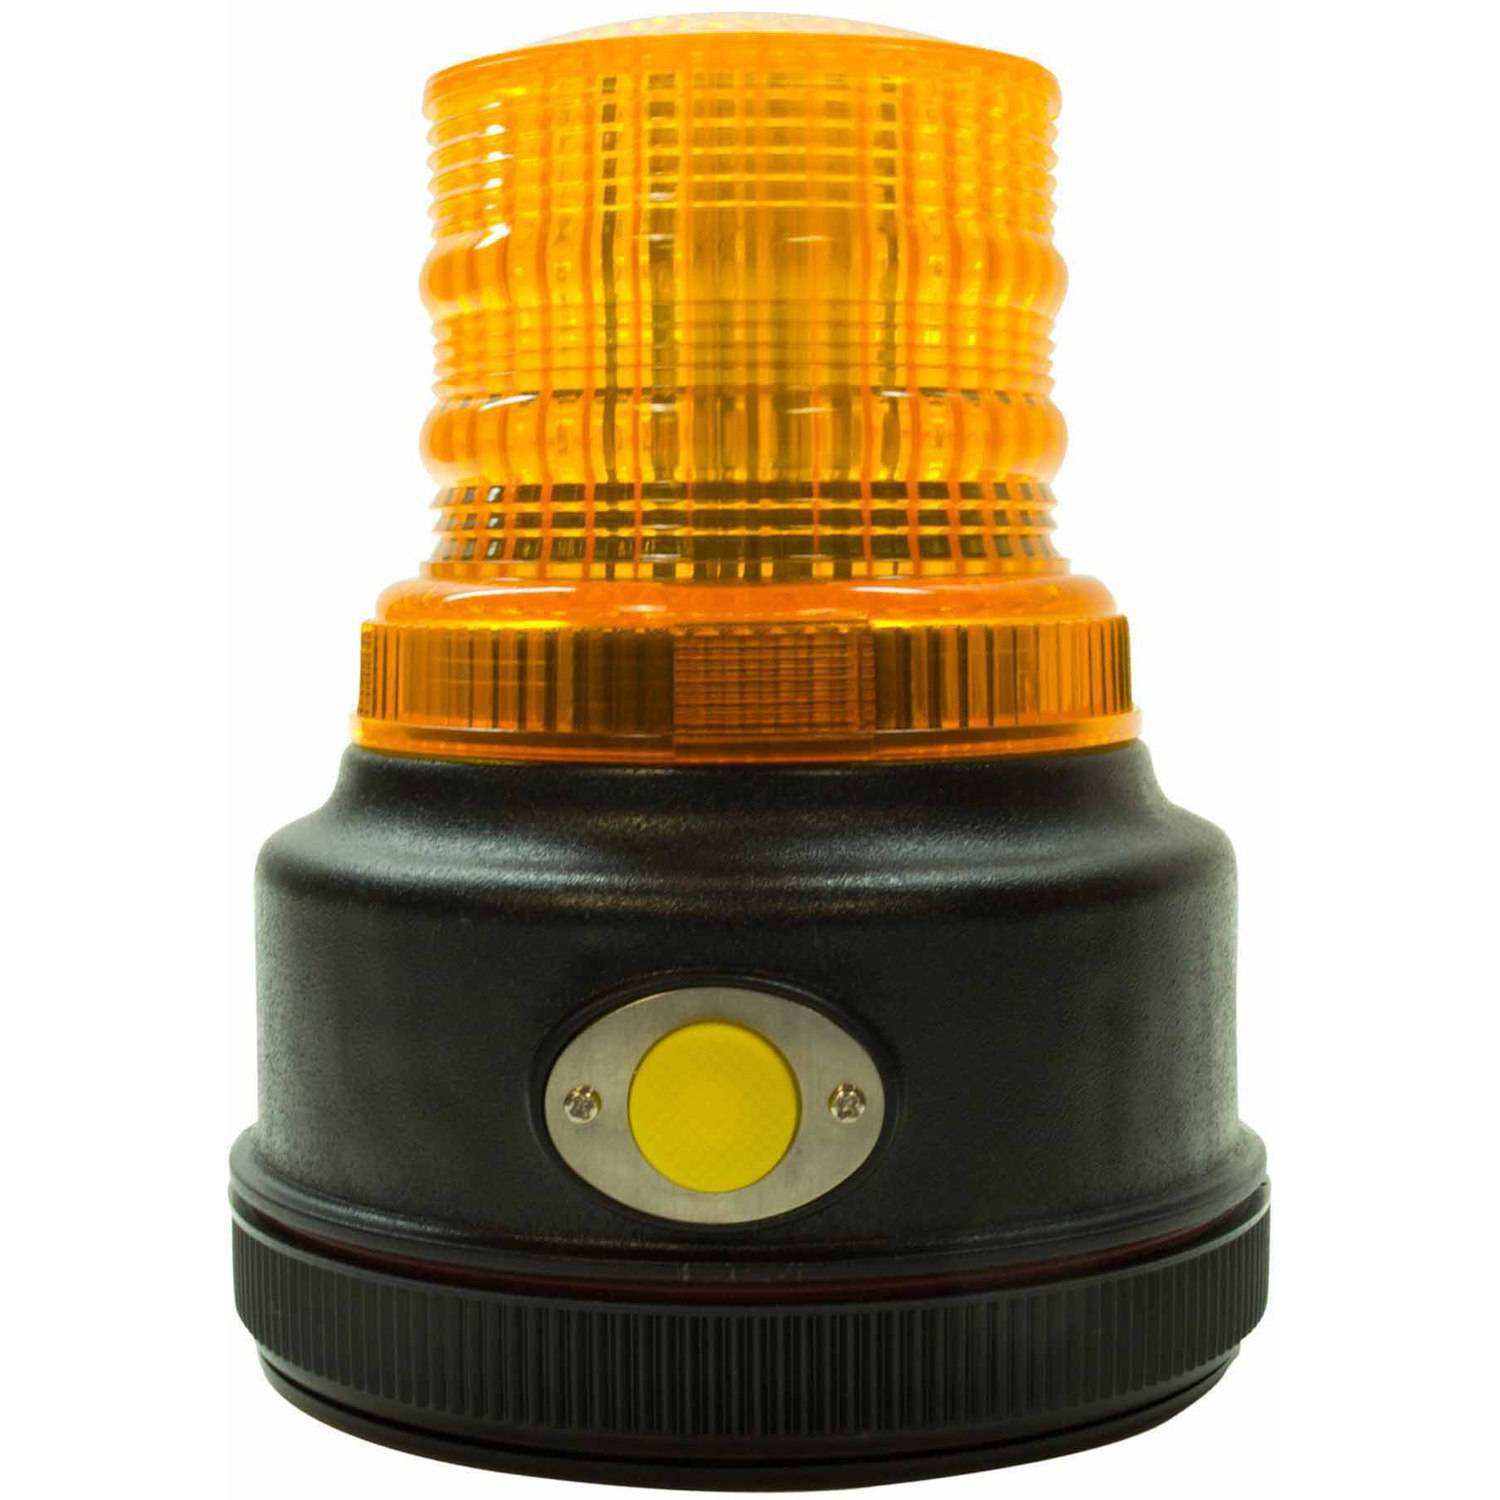 Blazer C43A LED Magnetic Battery-Operated Warning Beacon